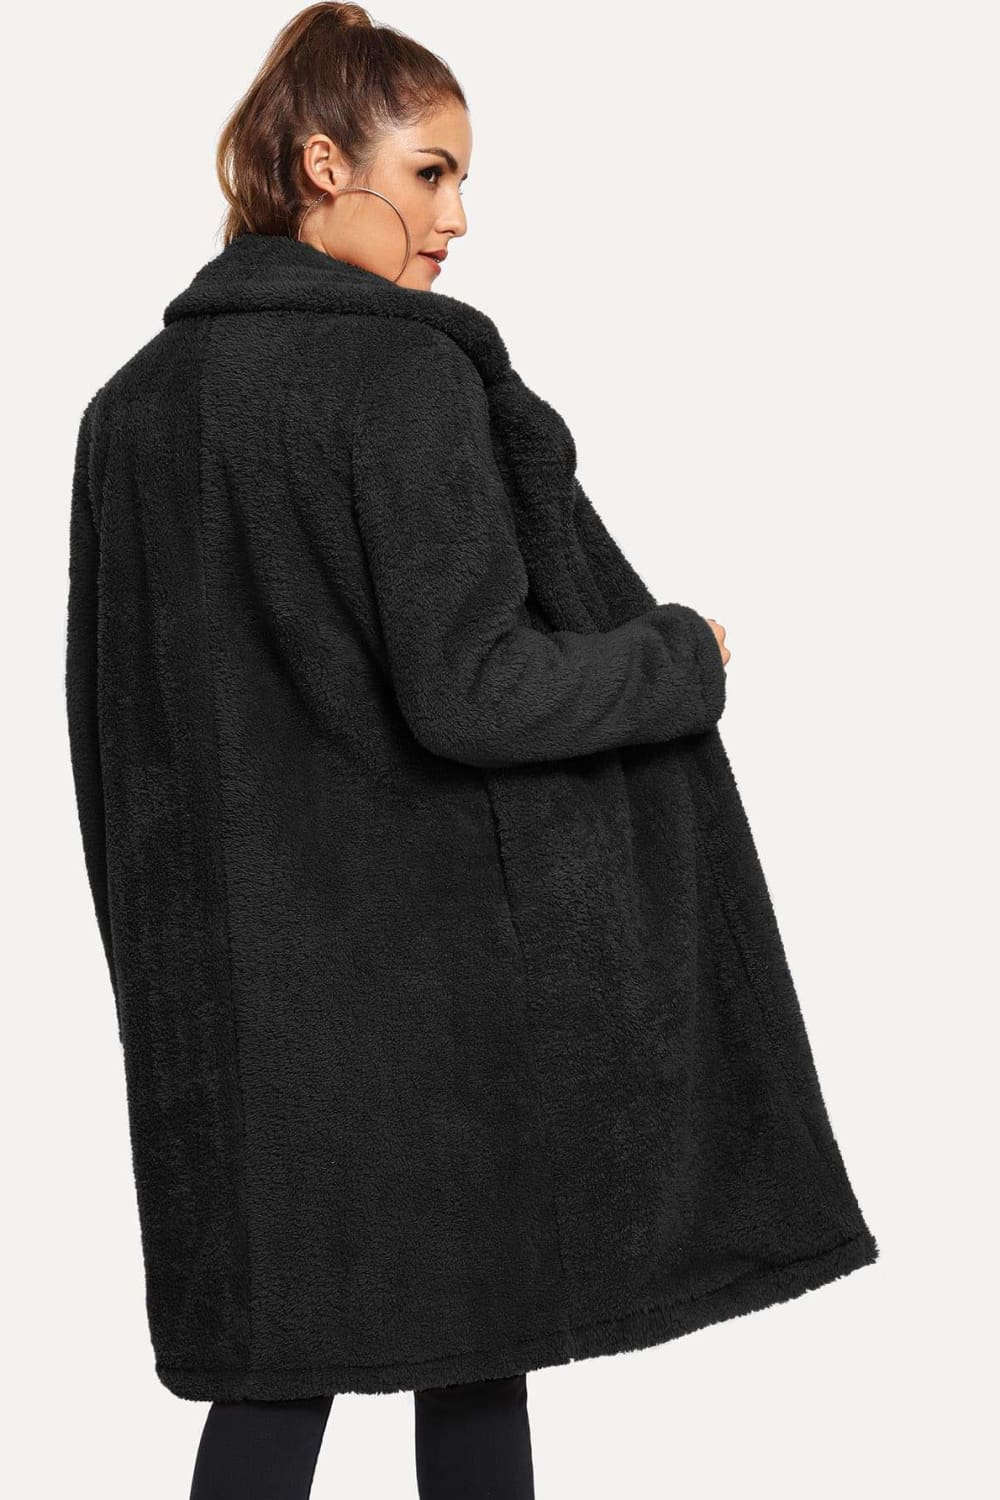 Johanna Long Teddy Coat in Black - Outerwear - Evan & Jane